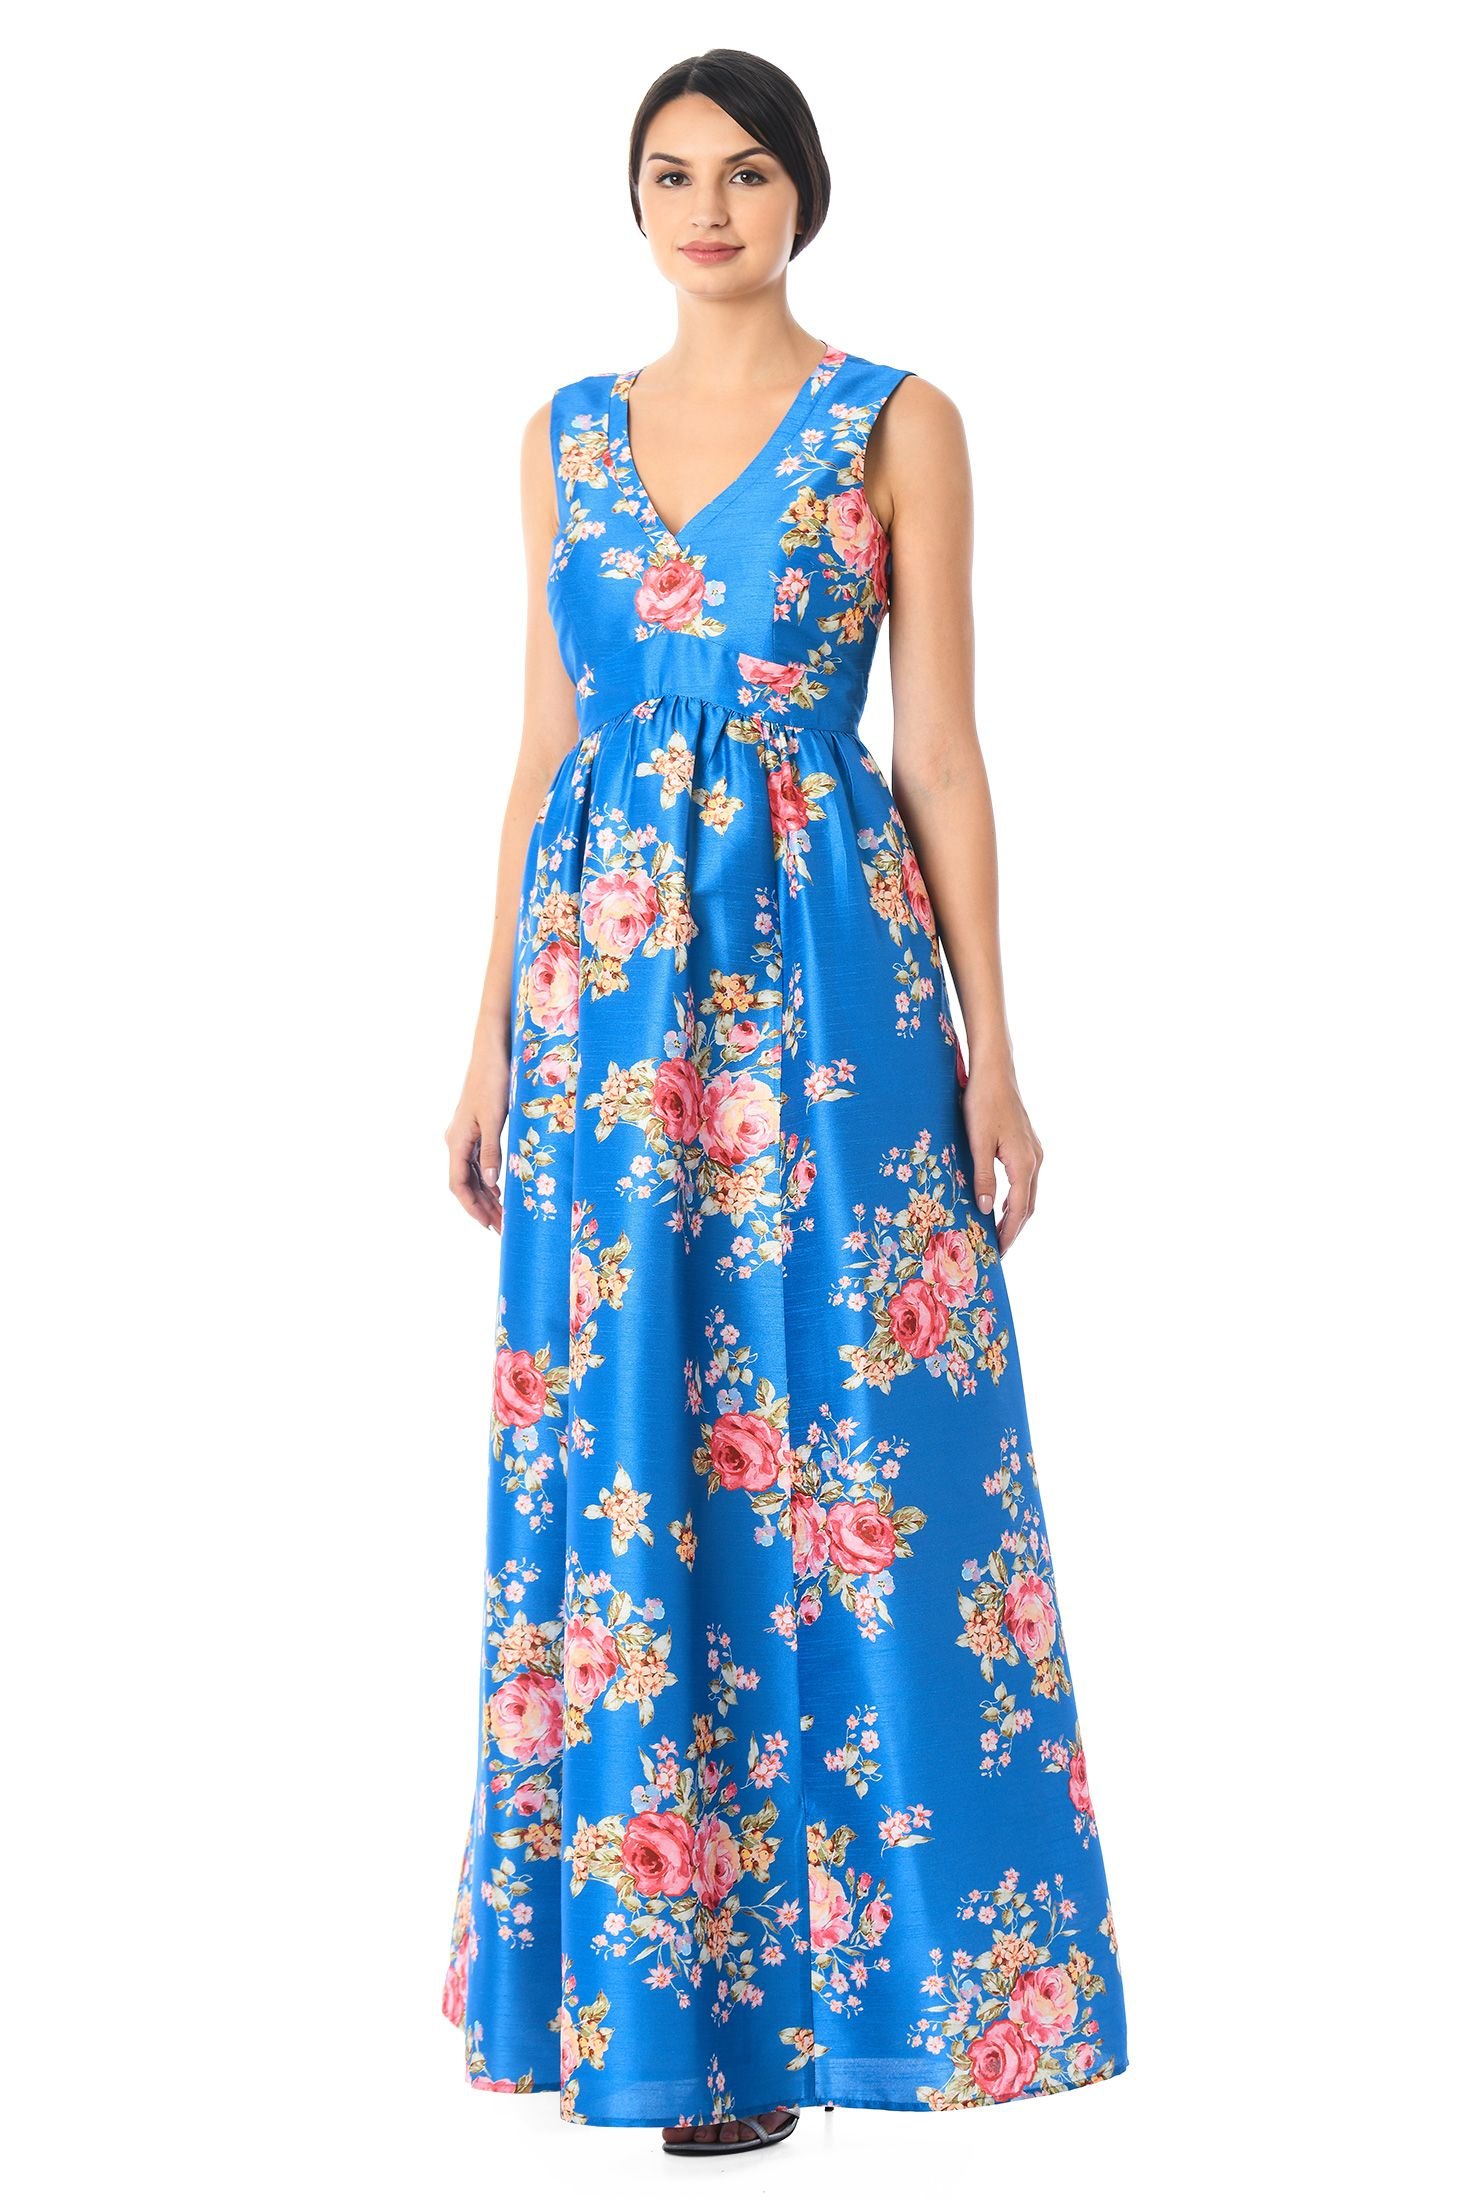 How To Wear Floral Prints Own The Summer How To Wear Floral Prints Own The Summer new images